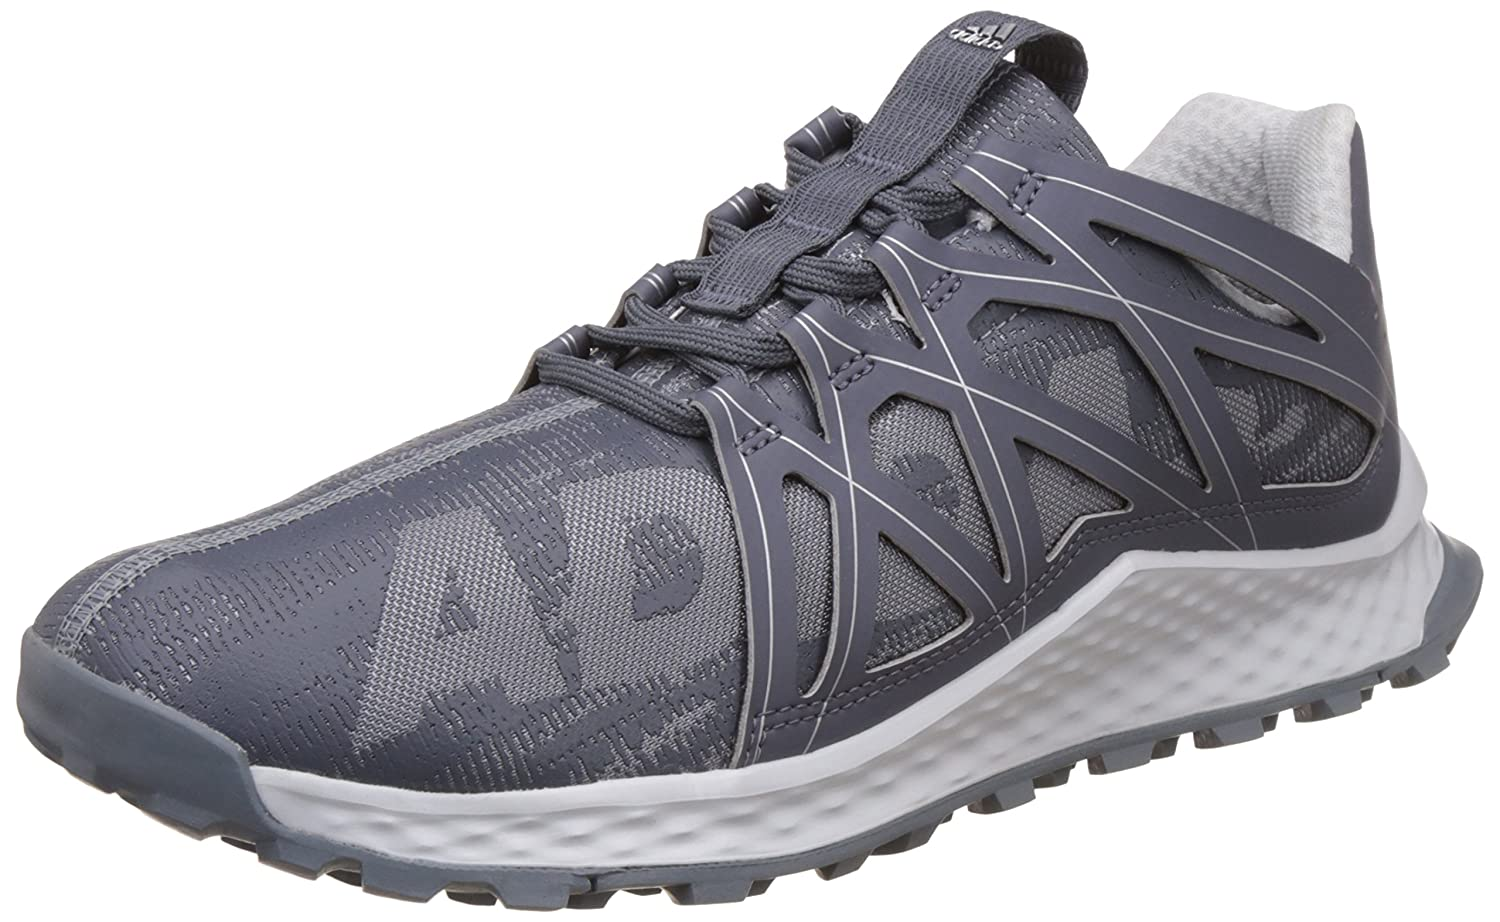 d7c364695 Adidas Men s Vigor Bounce M Running Shoes  Buy Online at Low Prices in  India - Amazon.in